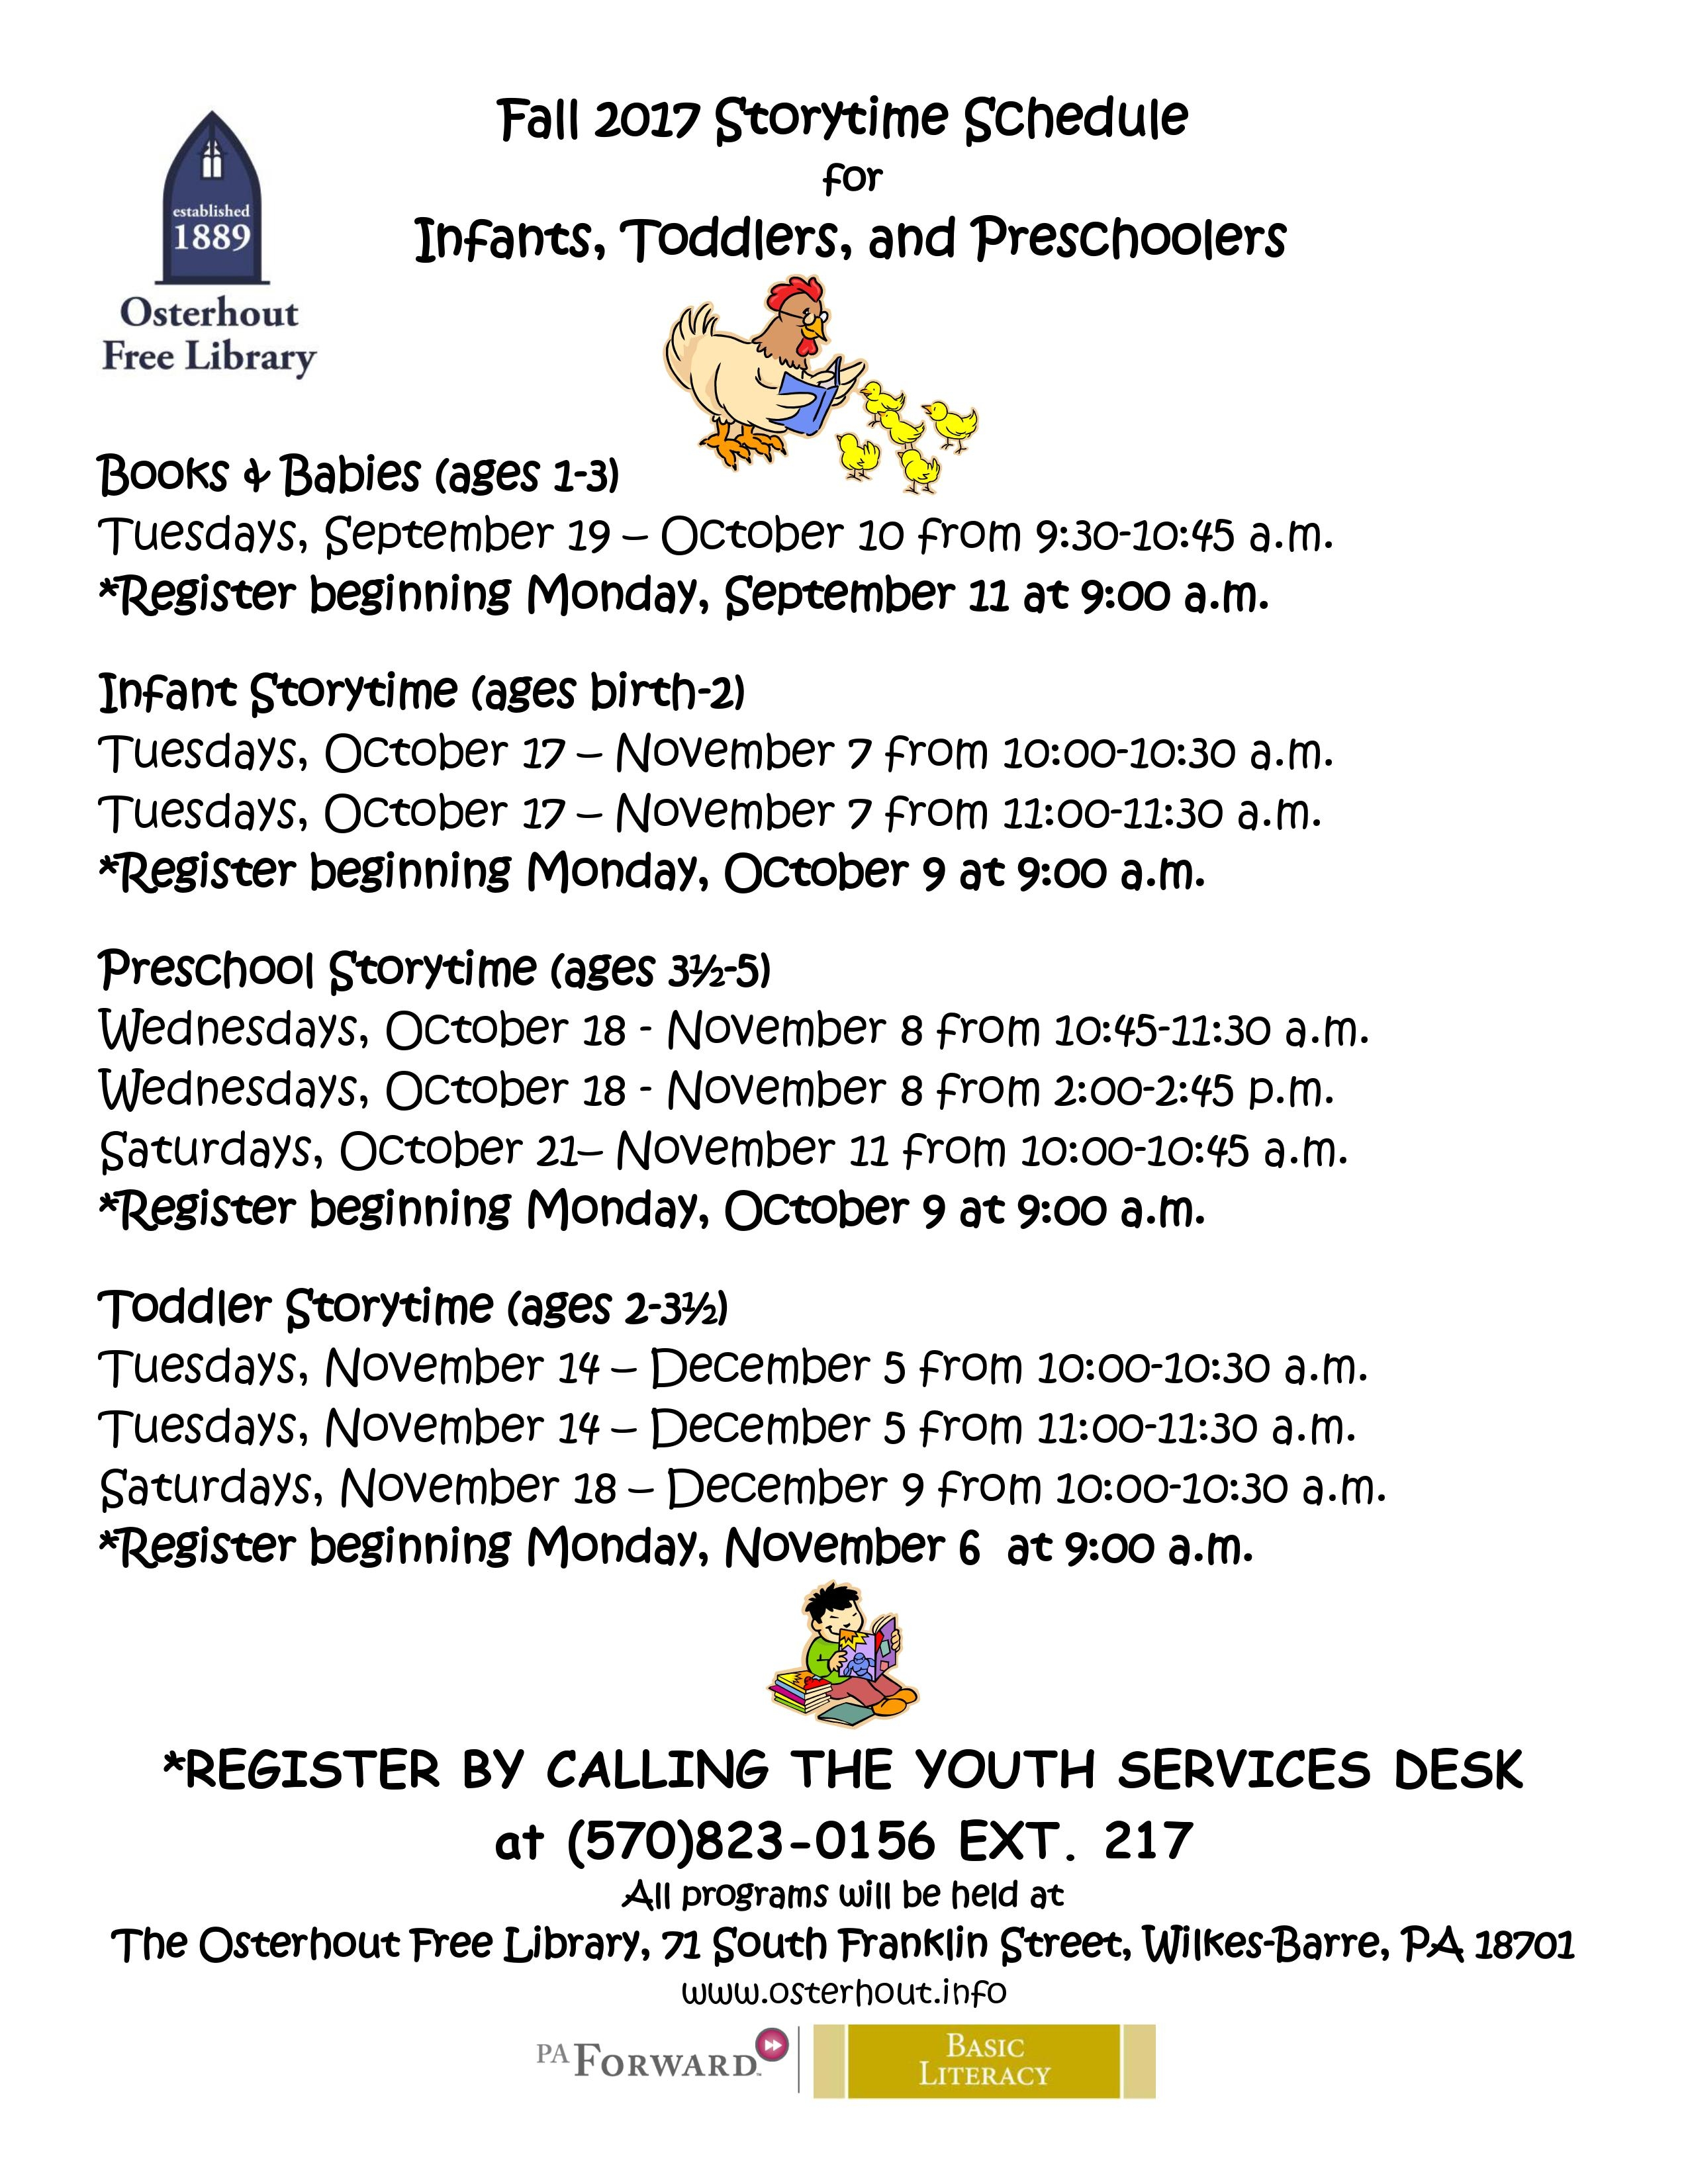 Preschool And Infant Registration Begins Today Osterhout Free